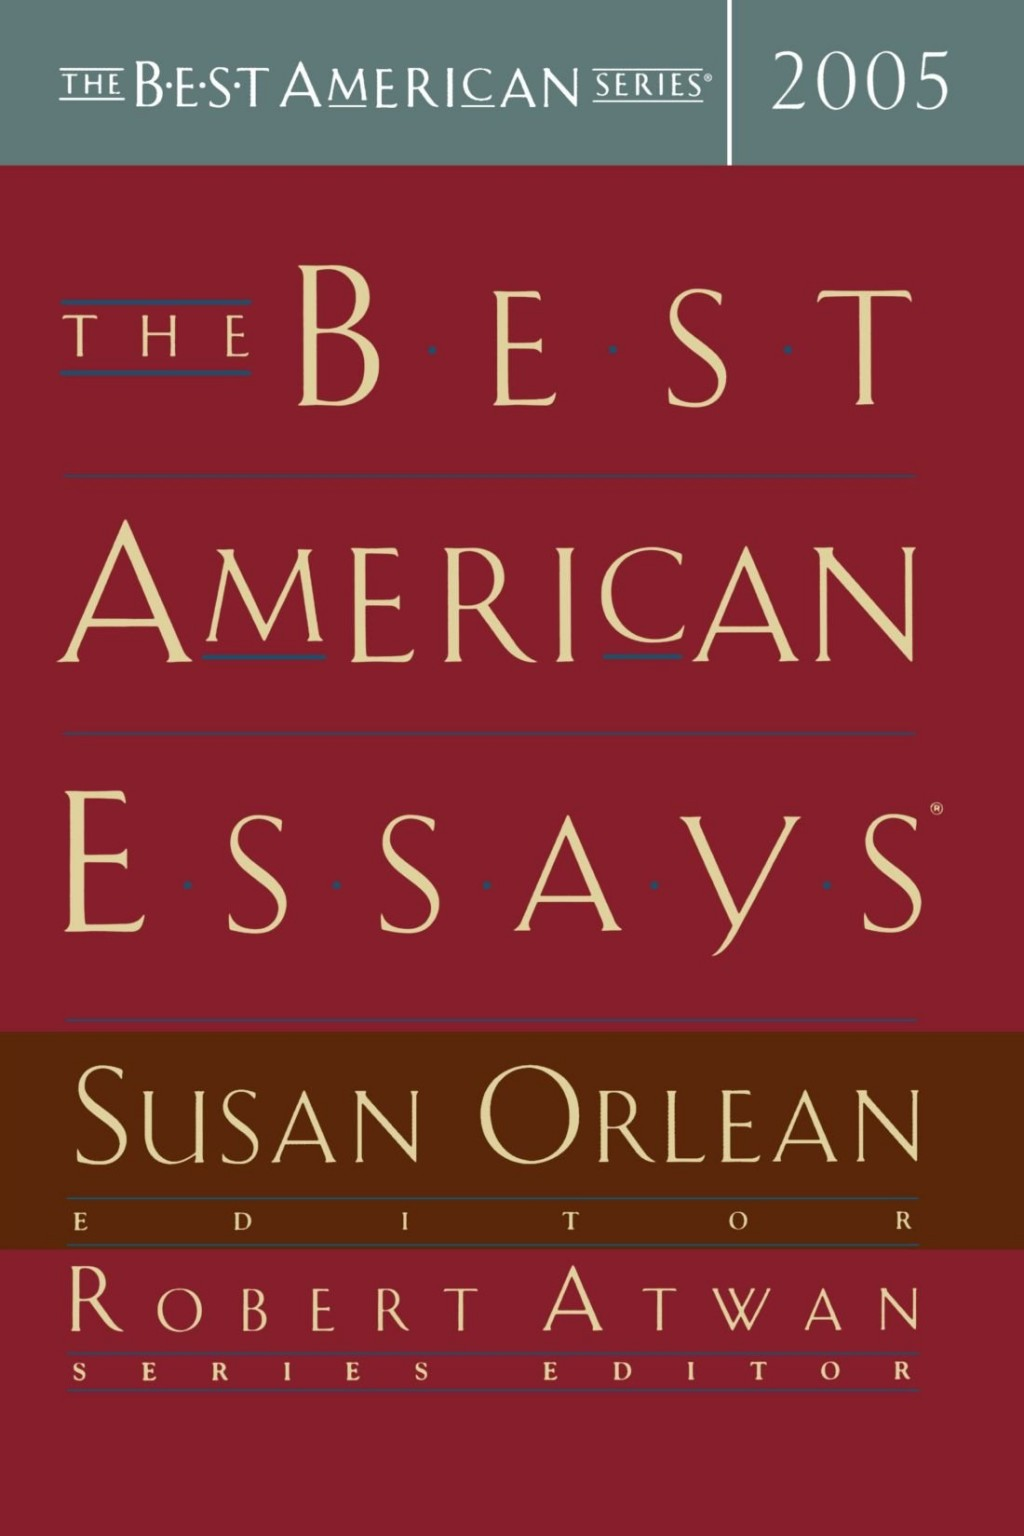 009 Essay Example 61eba7rjfxl The Best American Wonderful Essays 2013 Pdf Download Of Century Sparknotes 2017 Large